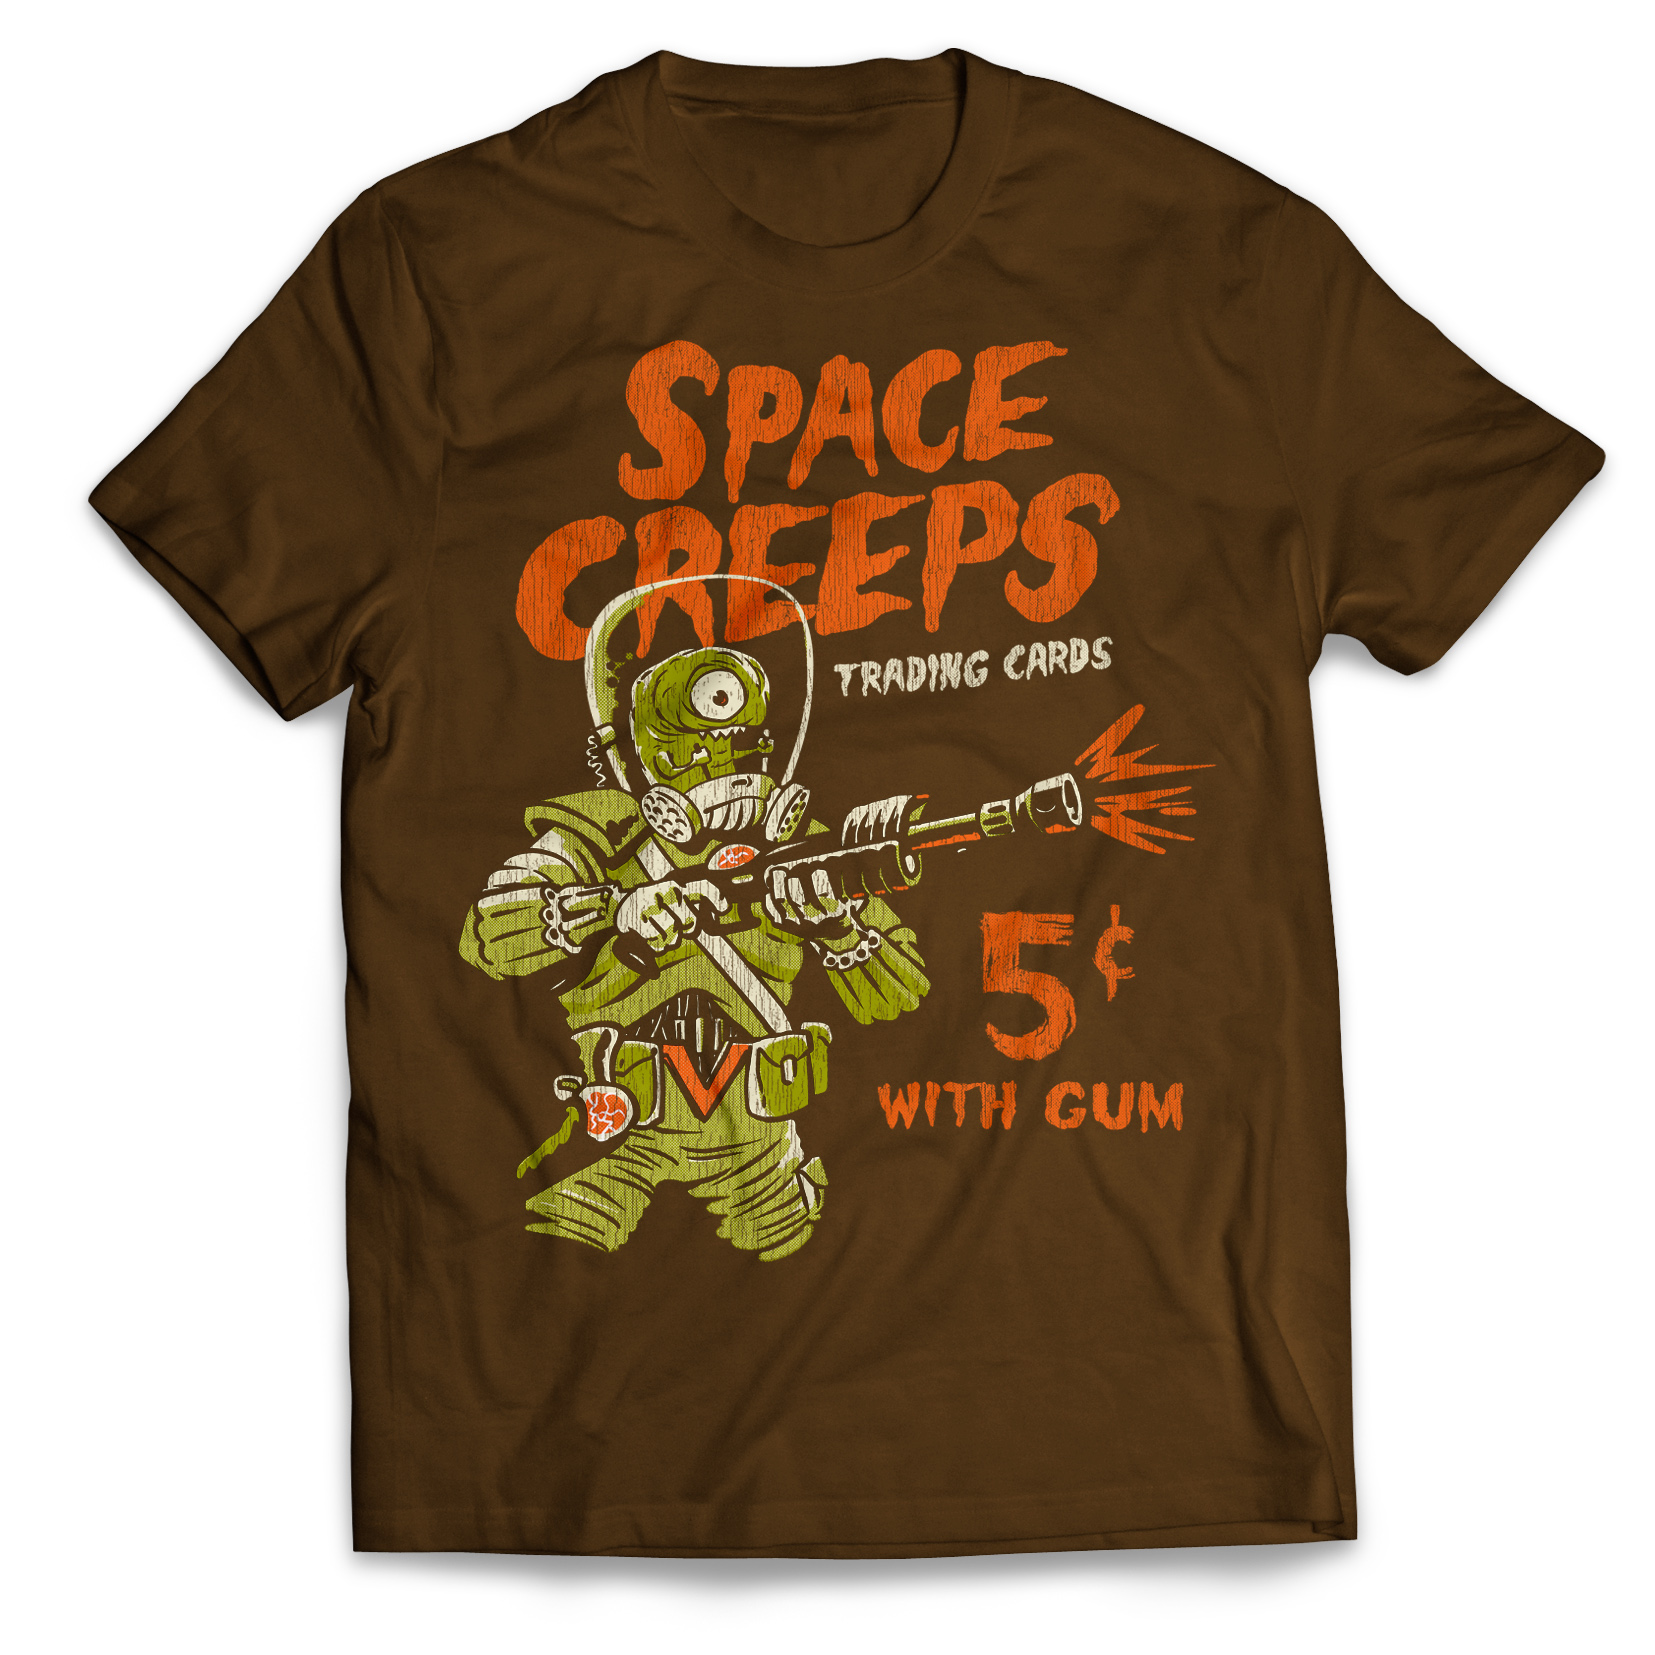 Space Creeps 5₵ With Gum T-shirtYou can almost smell the gum (not included). This tee shirt has that retro collectible card look and features an alien, Martian ray-gun and vintage-style graphics. - Get it on Amazon.comGet the Premium (Slim cut)